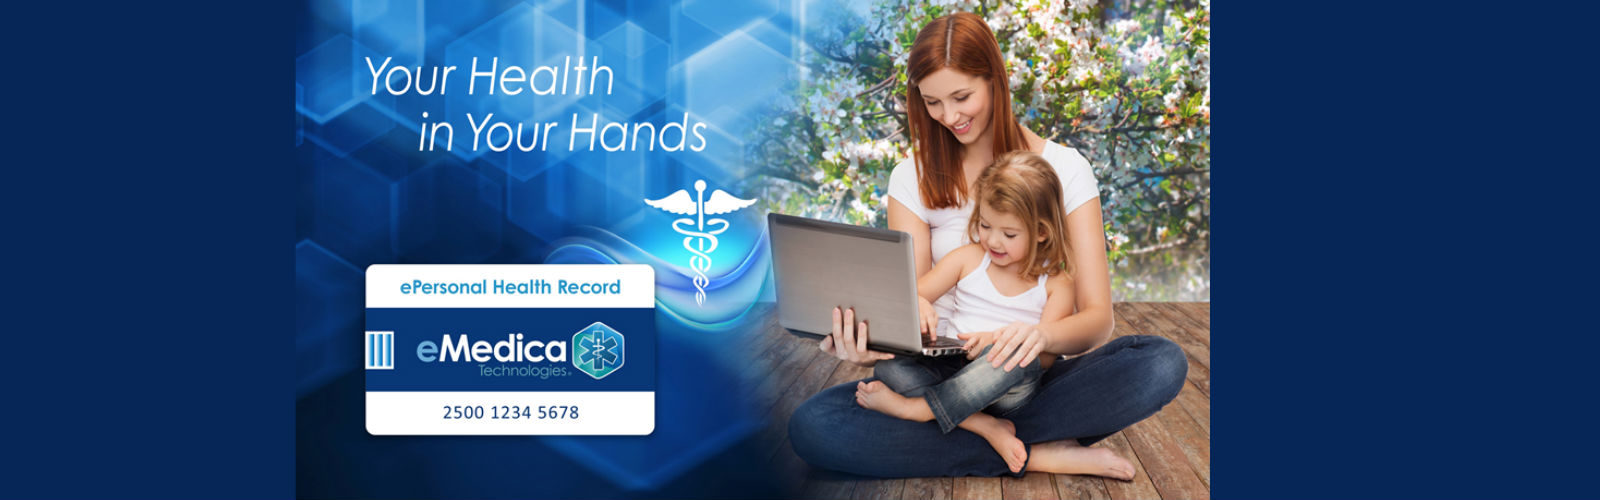 eMedica Card Helps You Carry Your Health in Your Hands